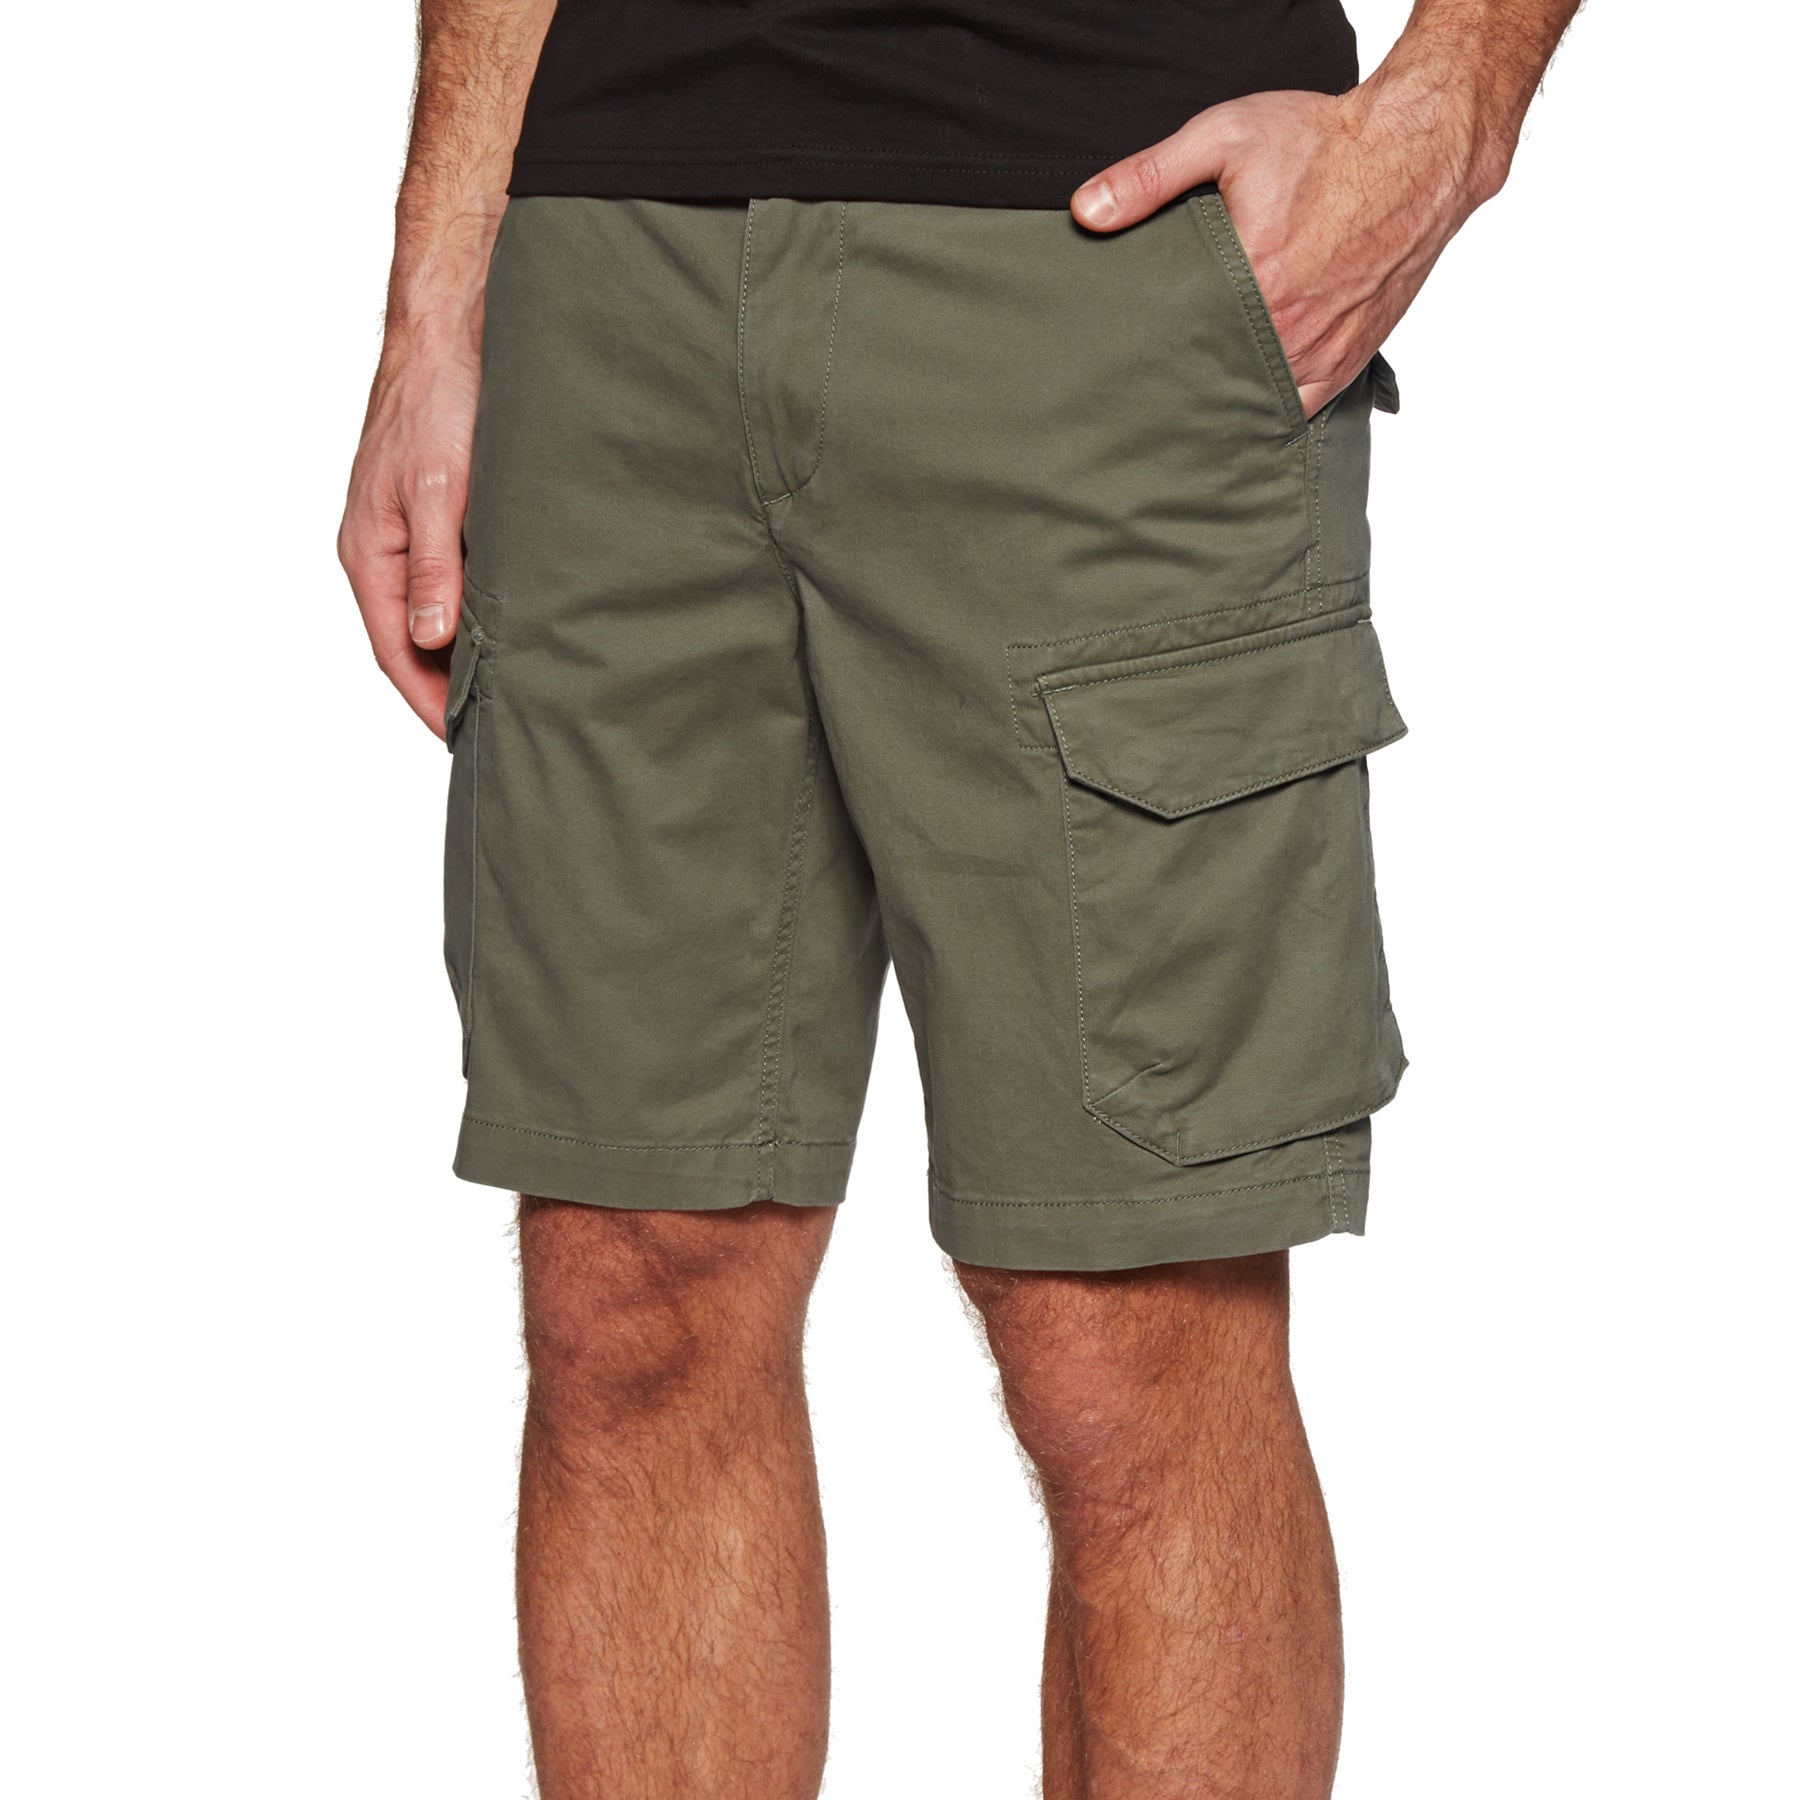 961479223b Timberland Squam Lake Cargo Shorts | Free Delivery* on All Orders